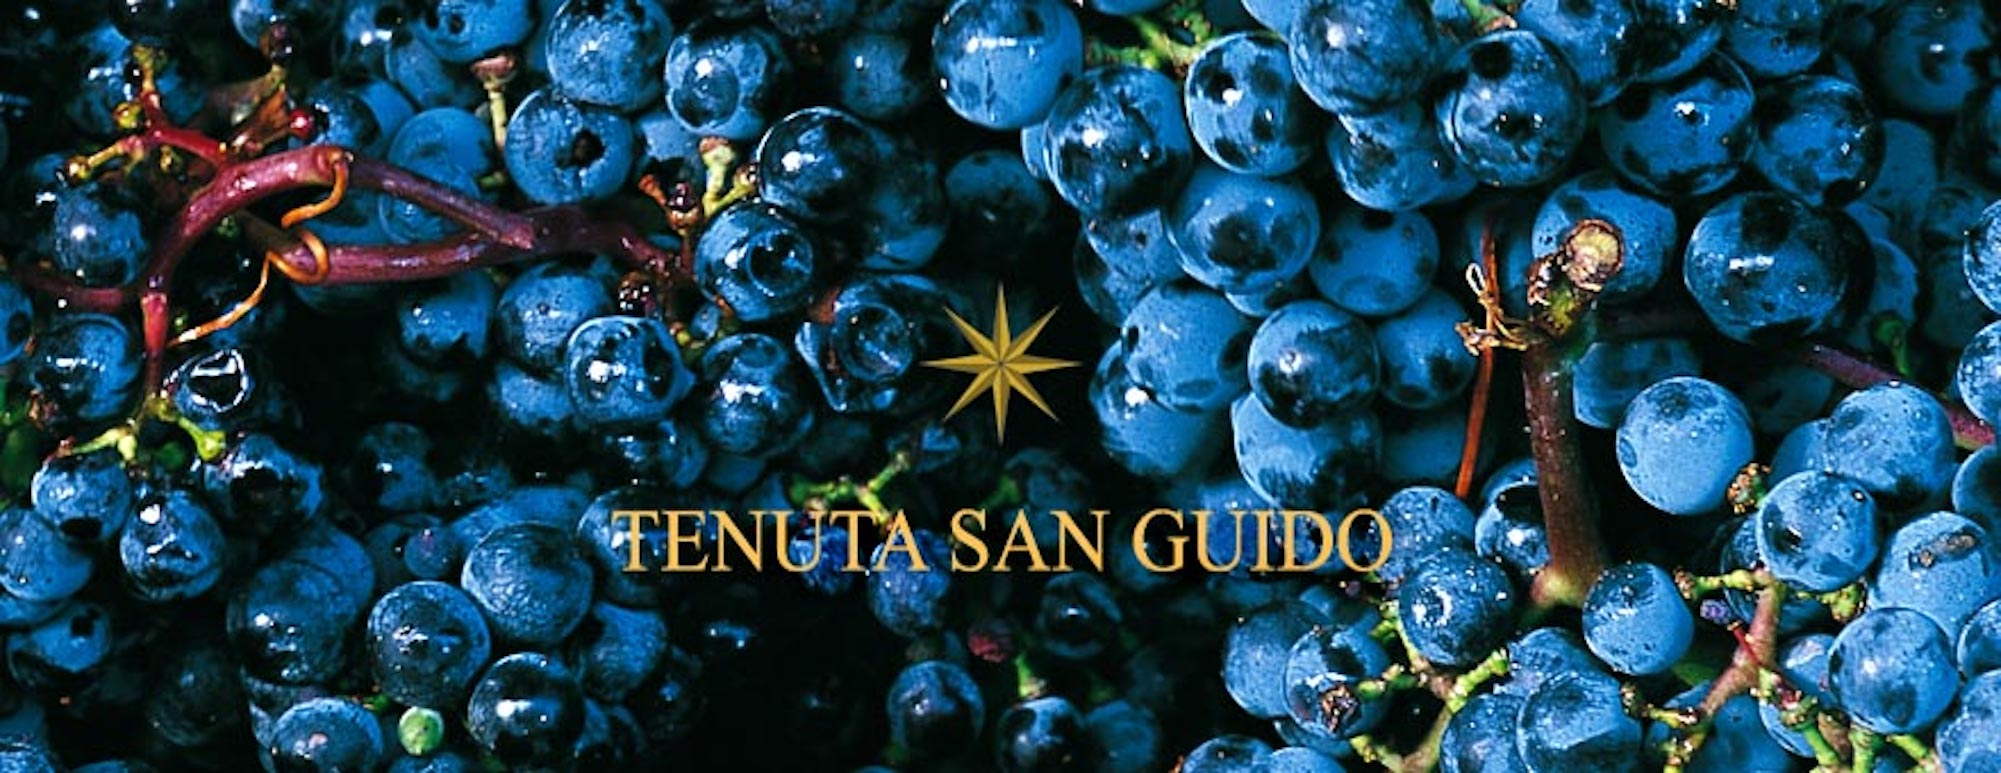 Sassicaia in #1 on Wine Spectator's Top 100 List